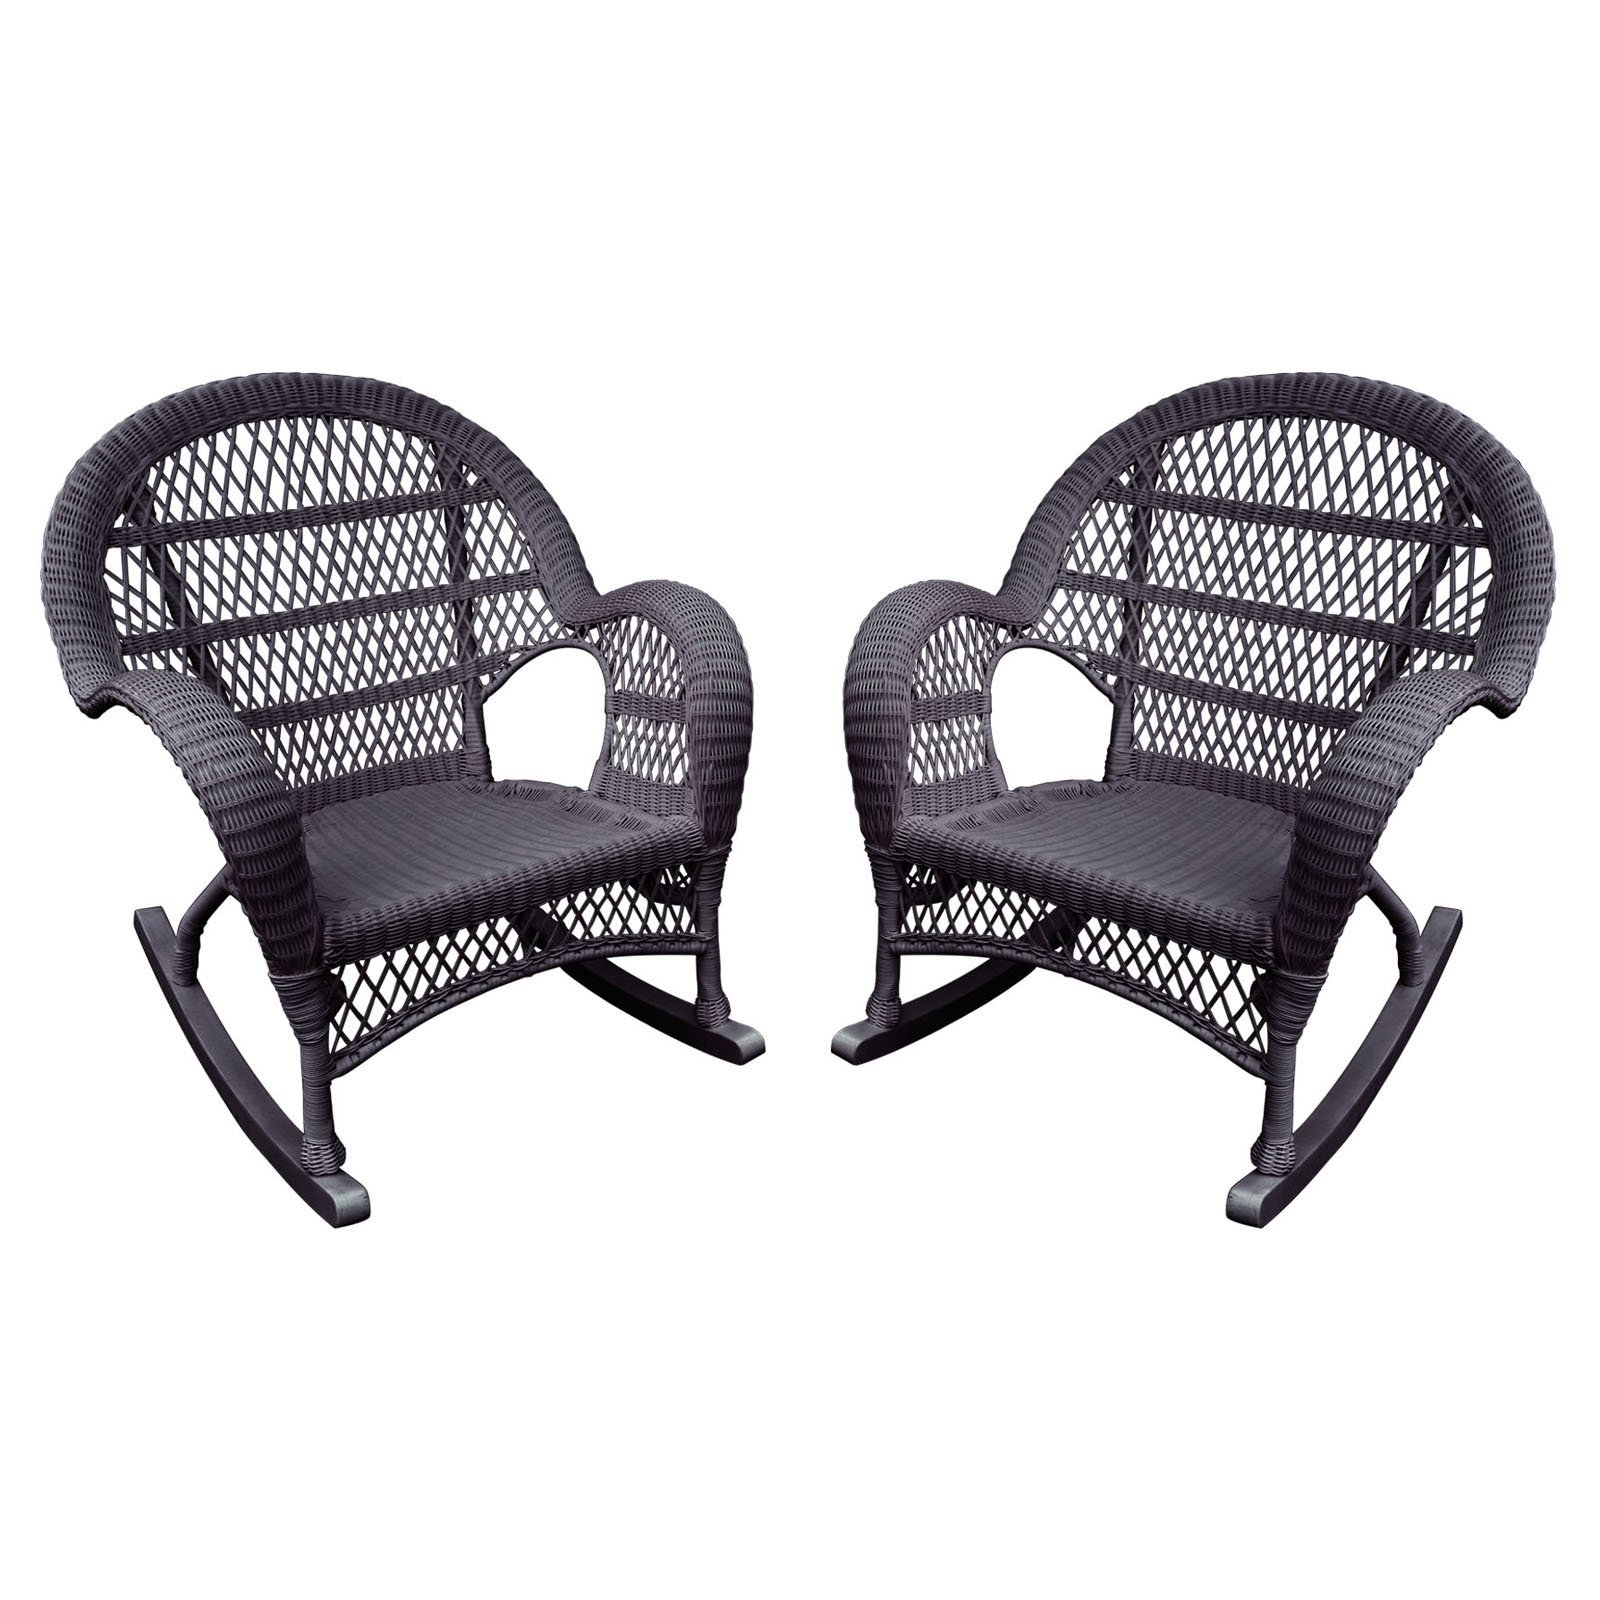 Jeco Santa Maria Wicker Patio Rockers with Optional Cushion - Set of 4